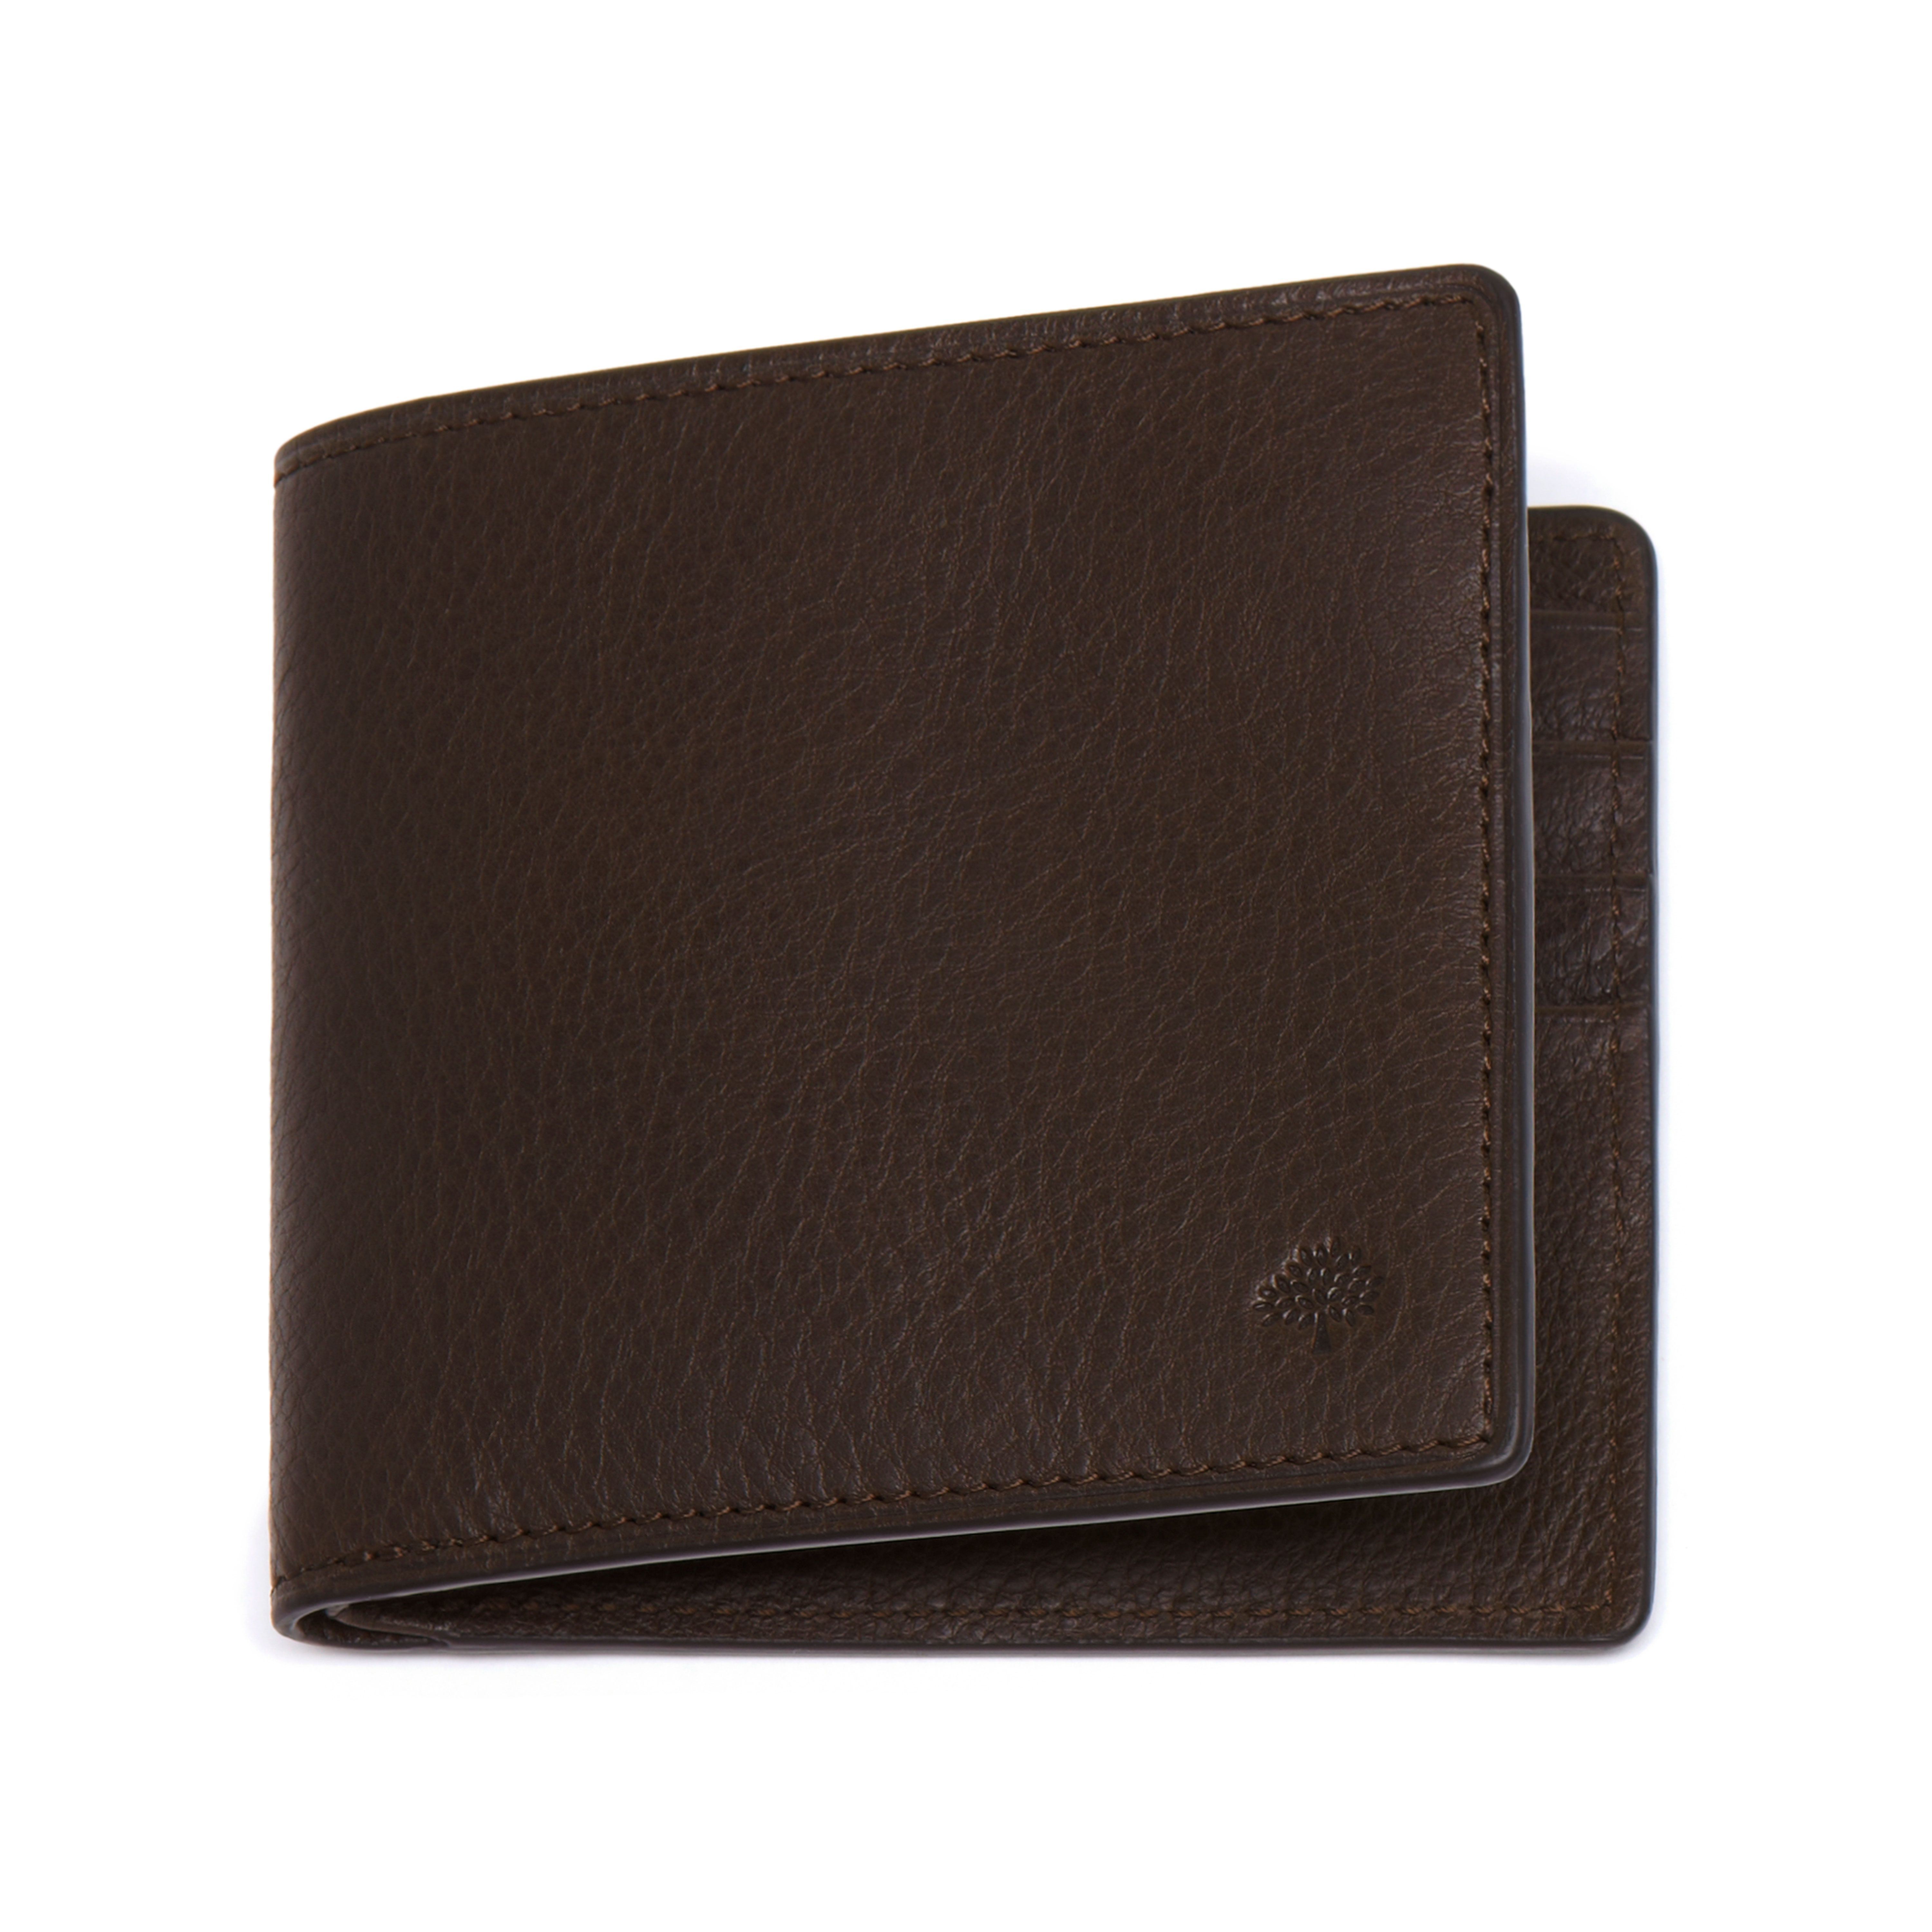 Mulberry Wallet For Men - Best Photo Wallet Justiceforkenny.Org 4d090e1a9b754